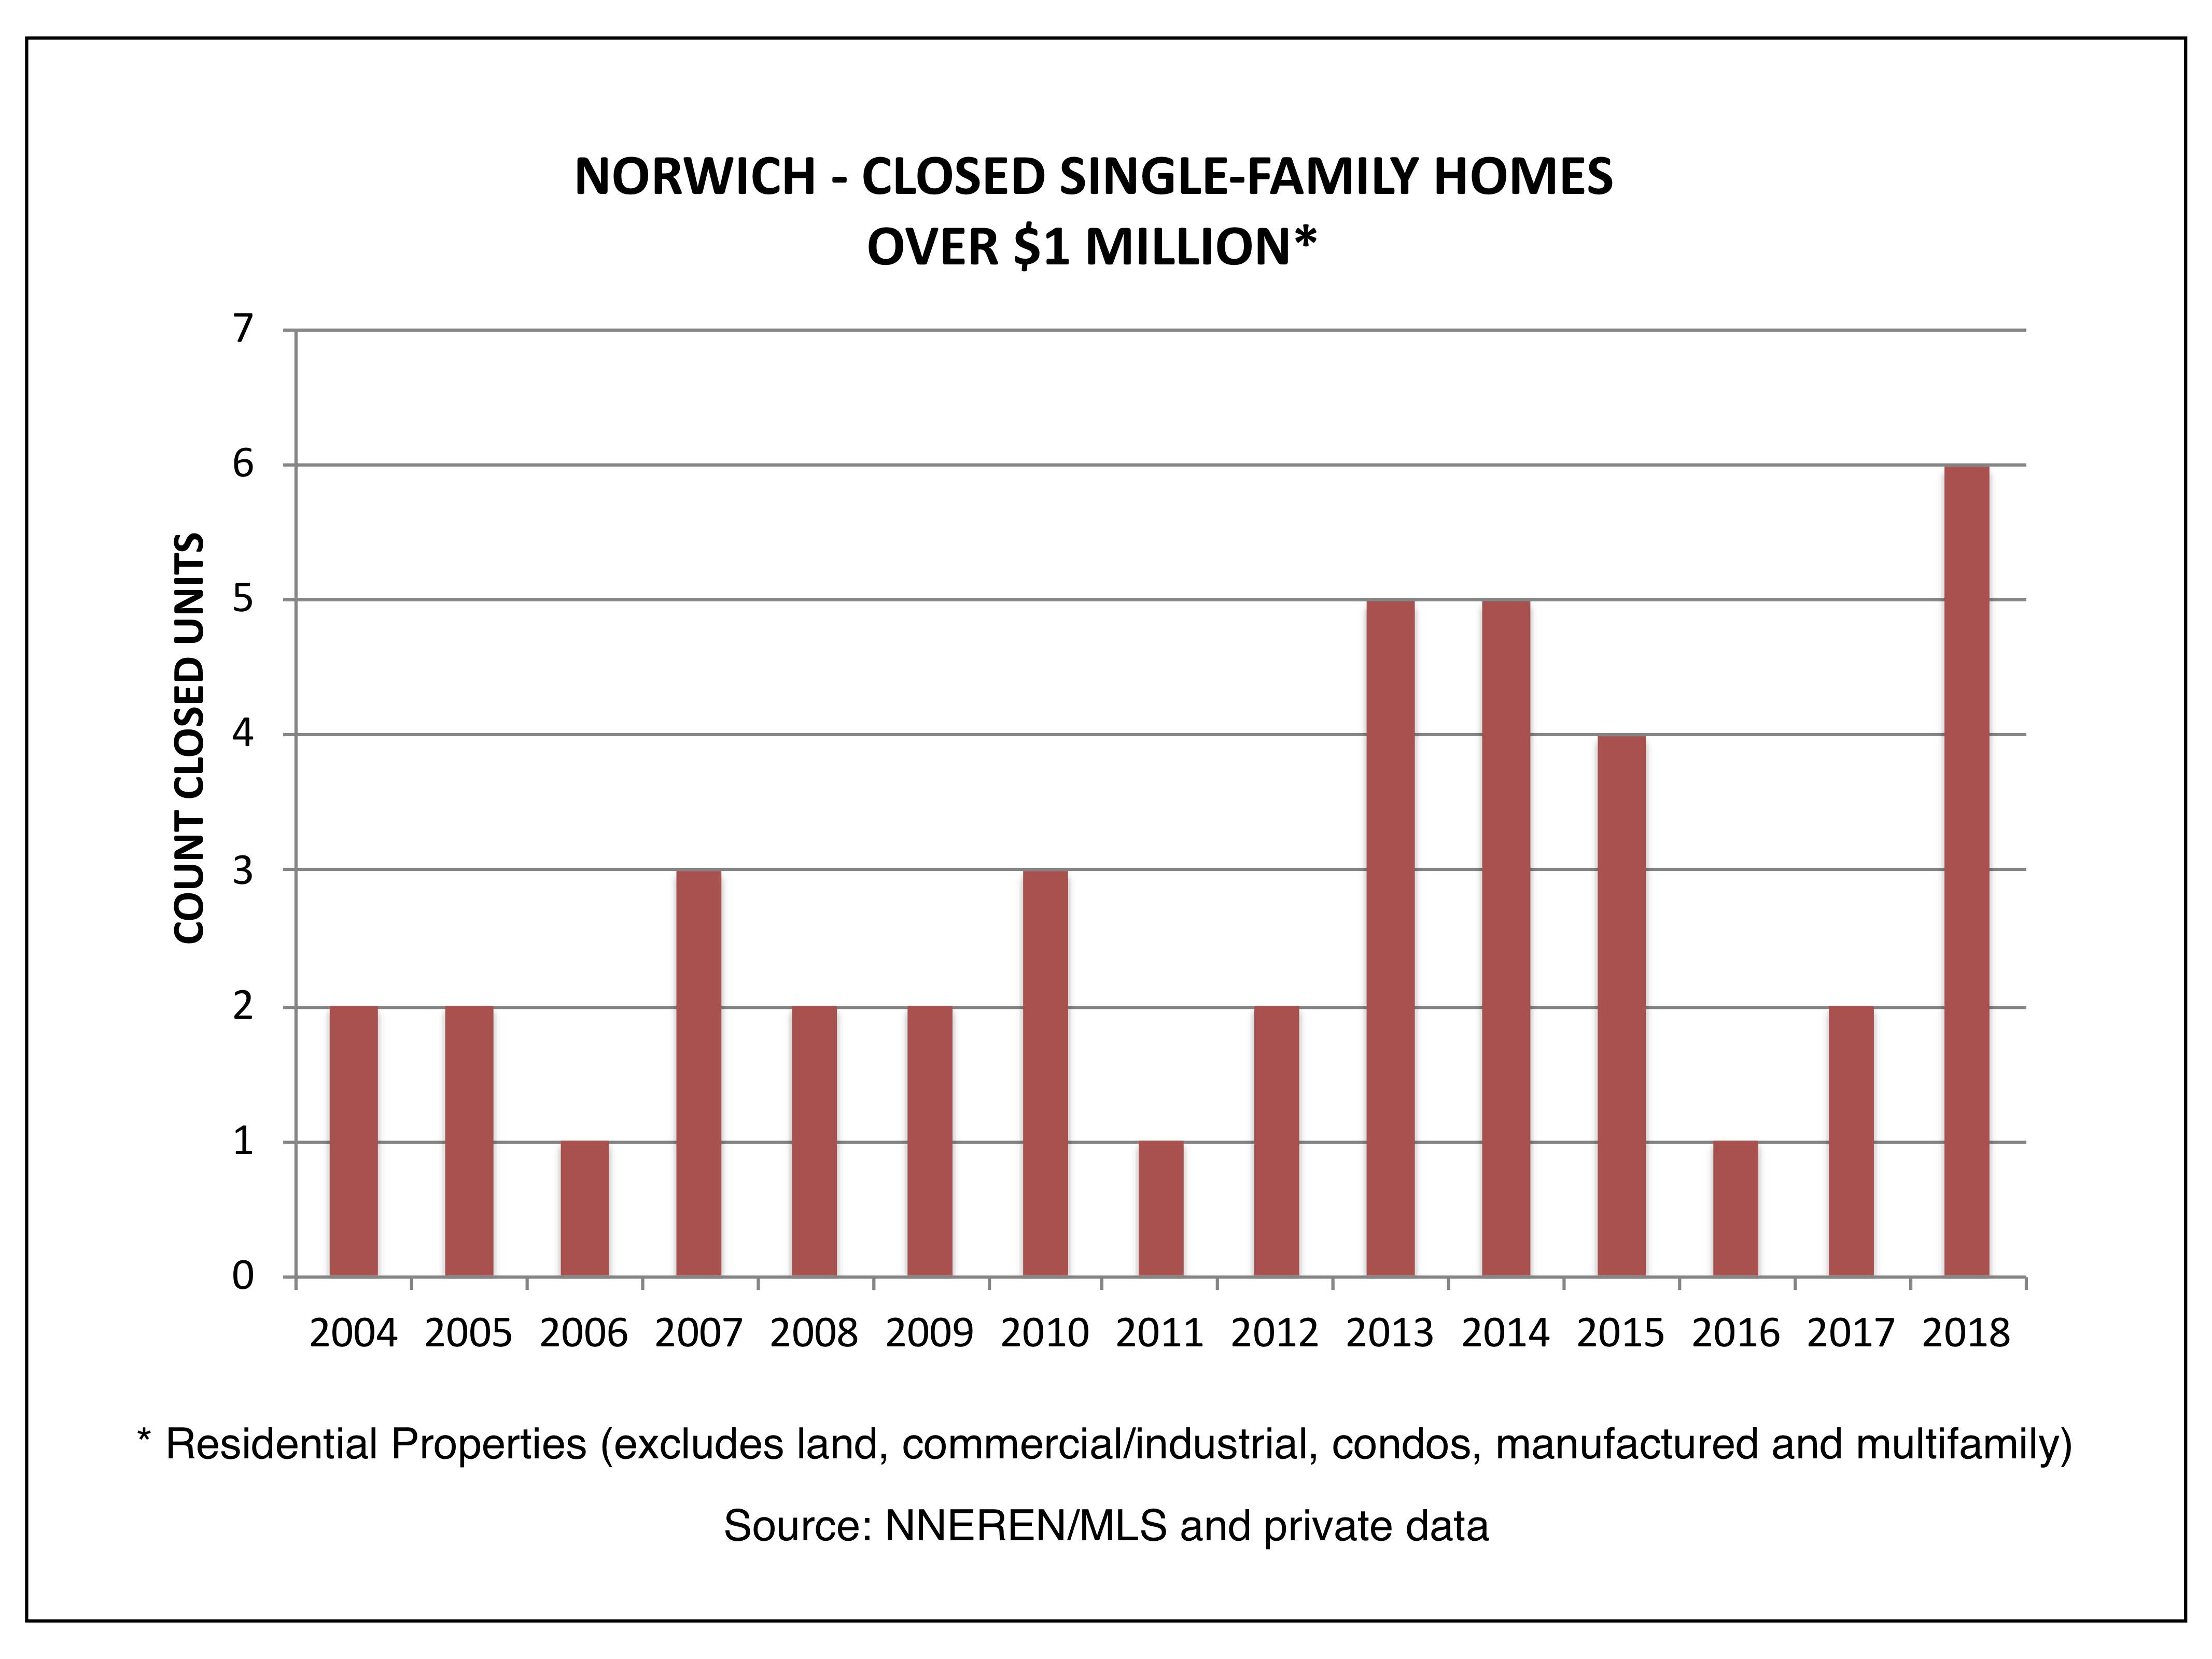 Norwich VT Real Estate - Closed Single Family Homes, Over $1 Million